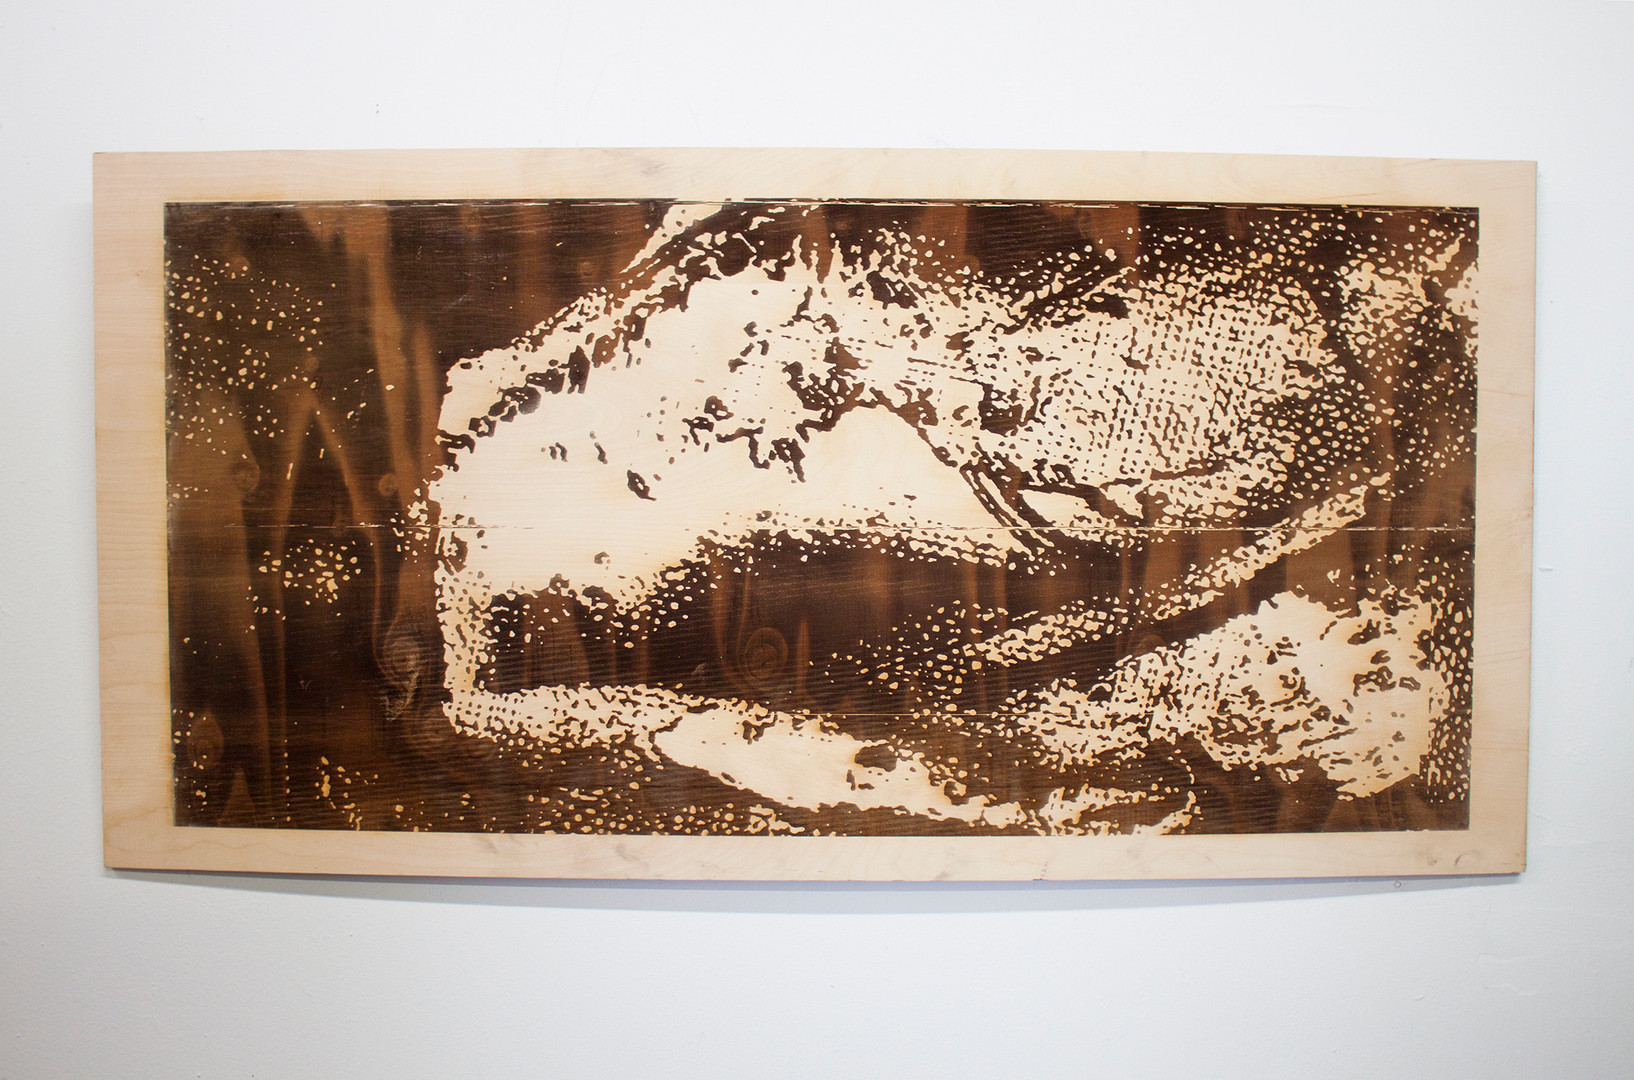 untitled laser etching 2x4 autopsy.jpg